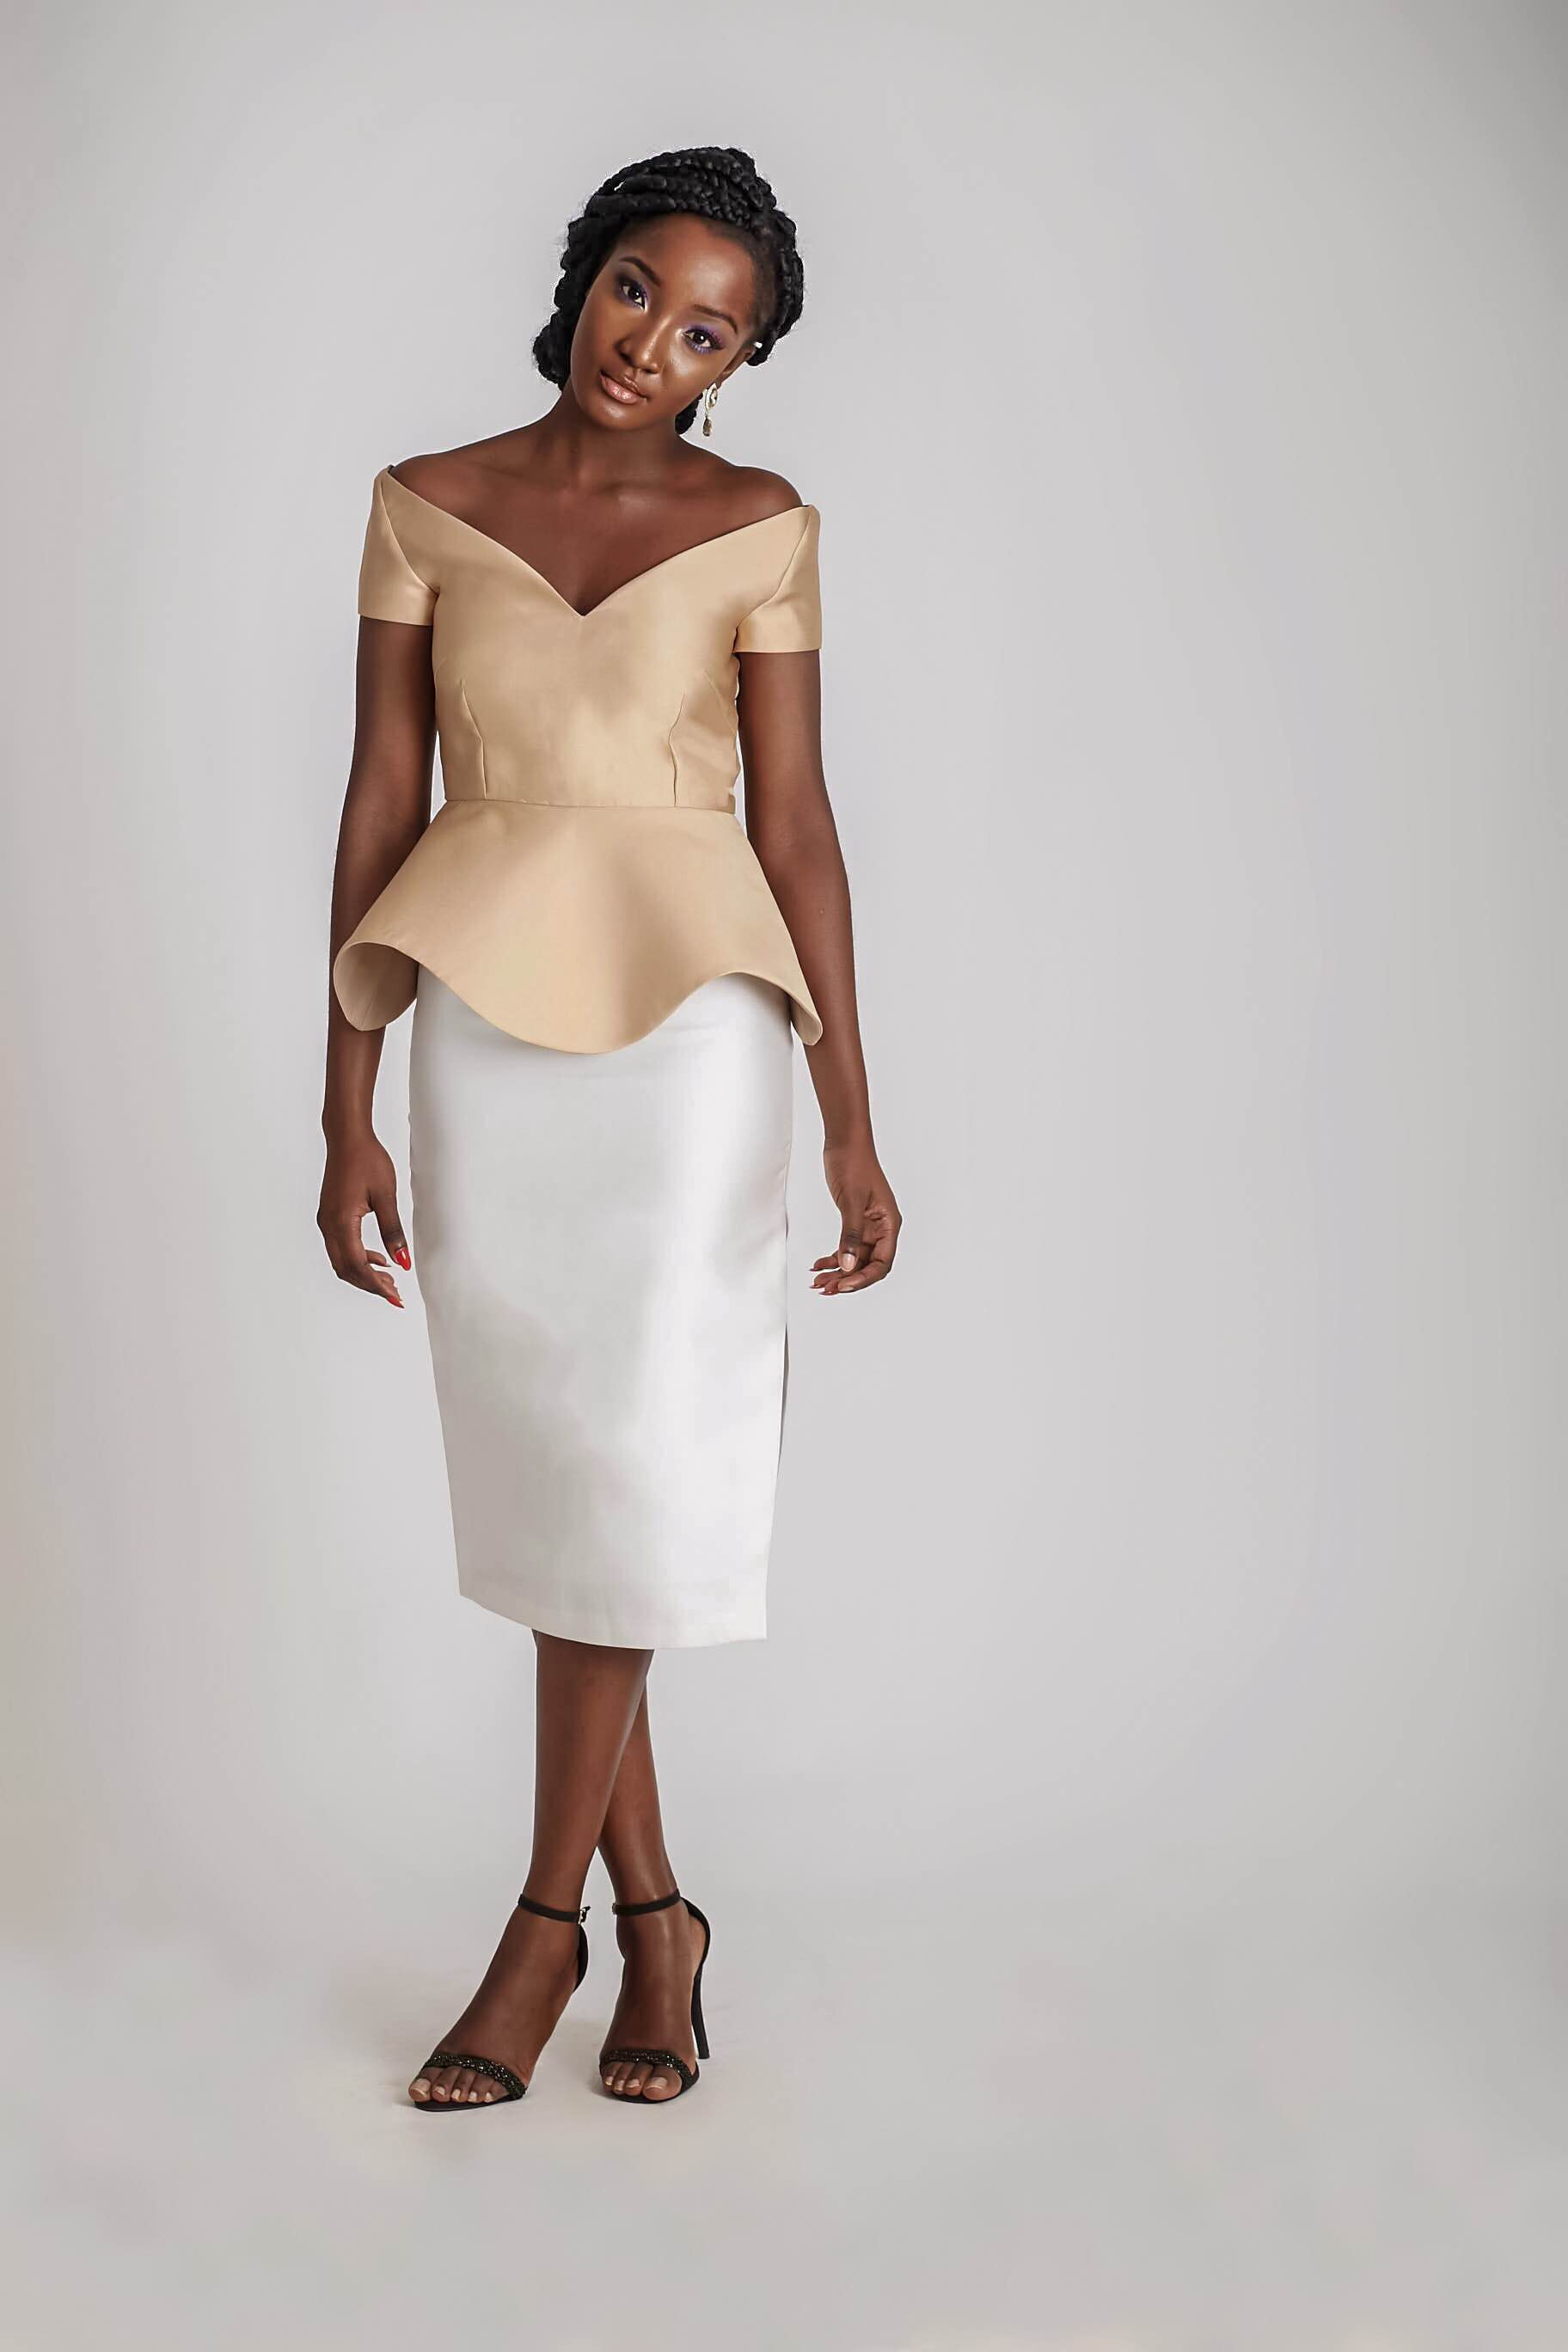 Imad Eduso - BN Style - Collection Lookbook - BellaNaija.com 016